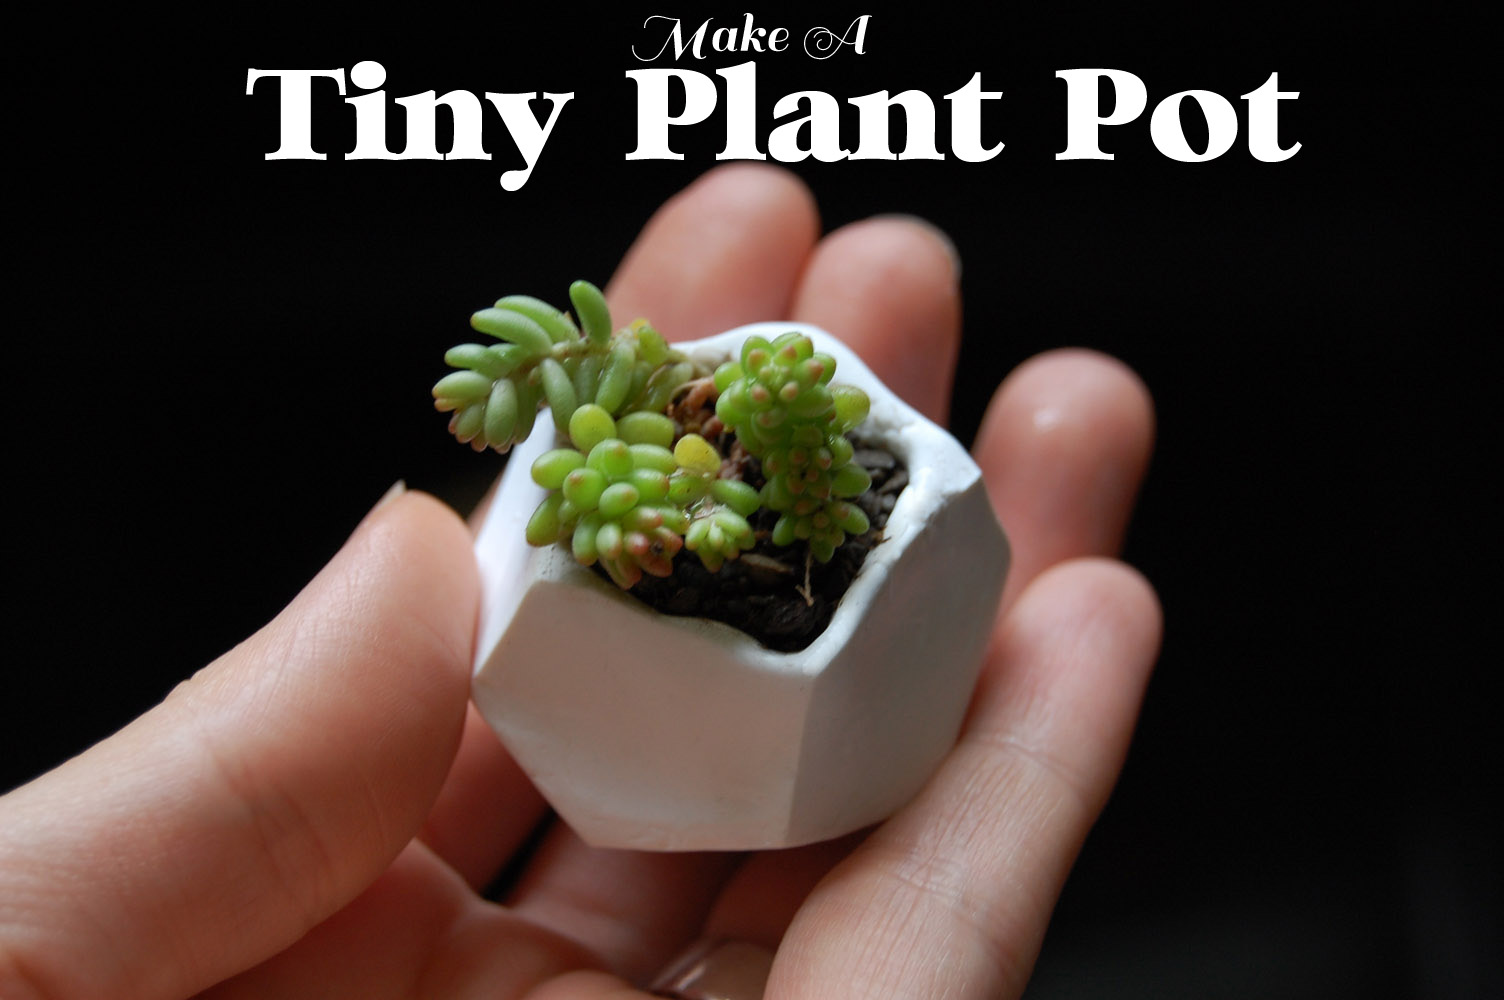 ... jewelry and accessories, Miniature 3D painting and Plant pot tutorial